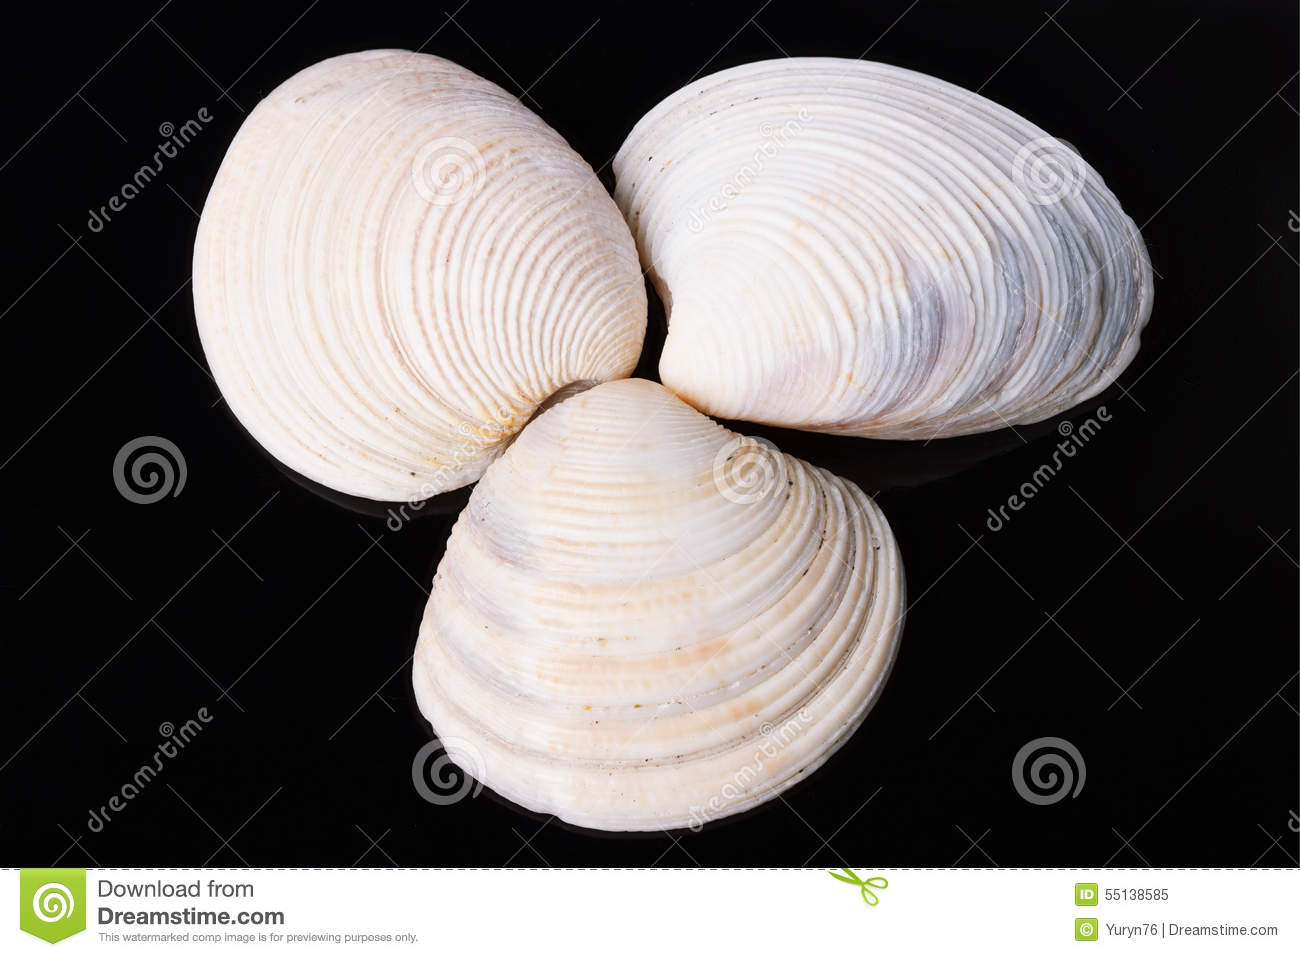 mollusk black singles Matchcom, the leading online dating resource for singles search through thousands of personals and photos go ahead, it's free to look.